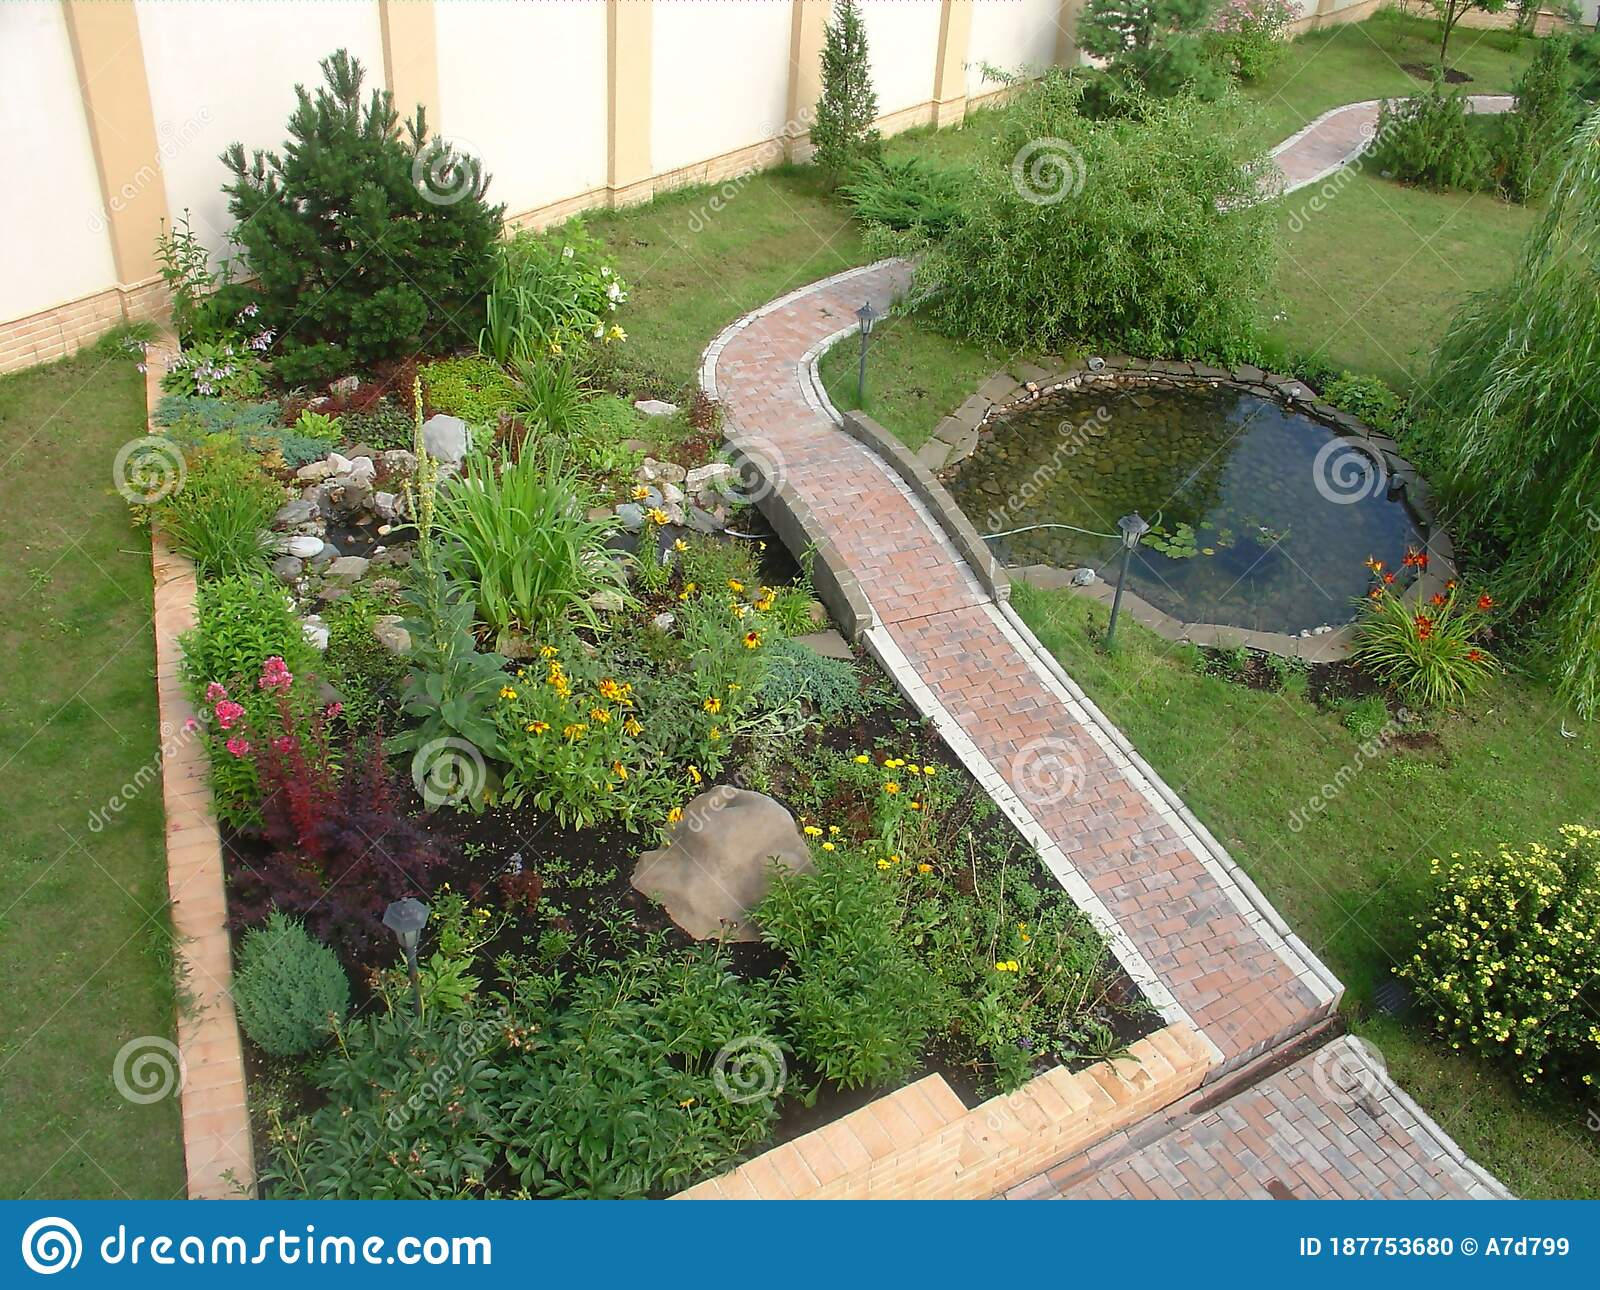 Gorgeous View Of Exterior Of A Private Garden Landscape Design Pond Decorative Pool With Rocks And Green Plants Stock Photo Image Of Leaf Design 187753680